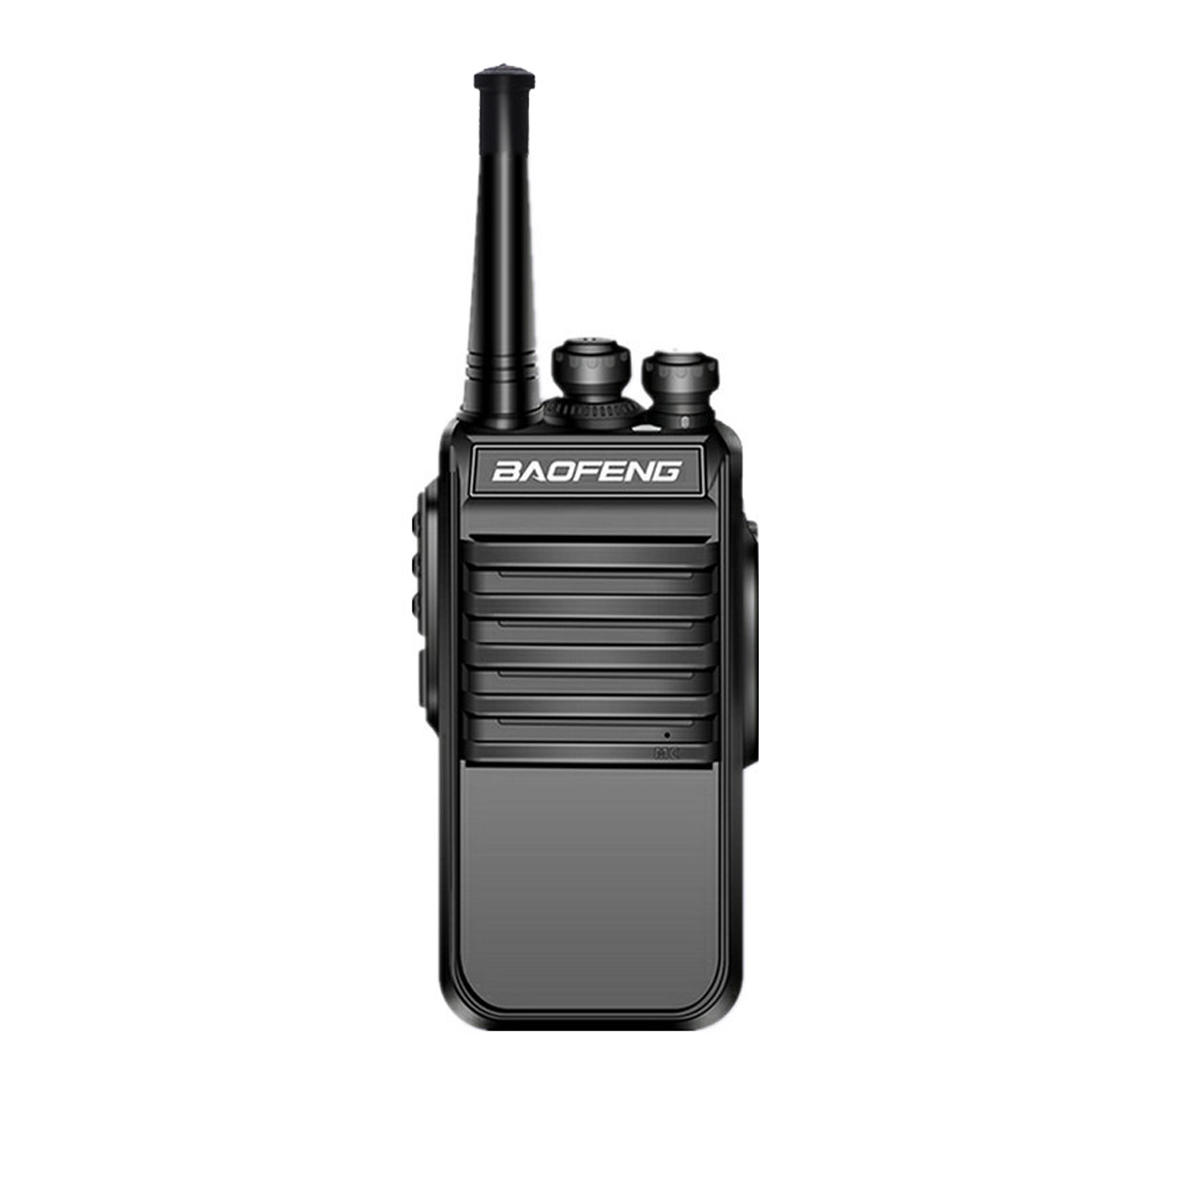 Baofeng E50 Walkie Talkie UHF 6800mA Portable Two Way Radio 8W 400-470 MHZ USB Charging